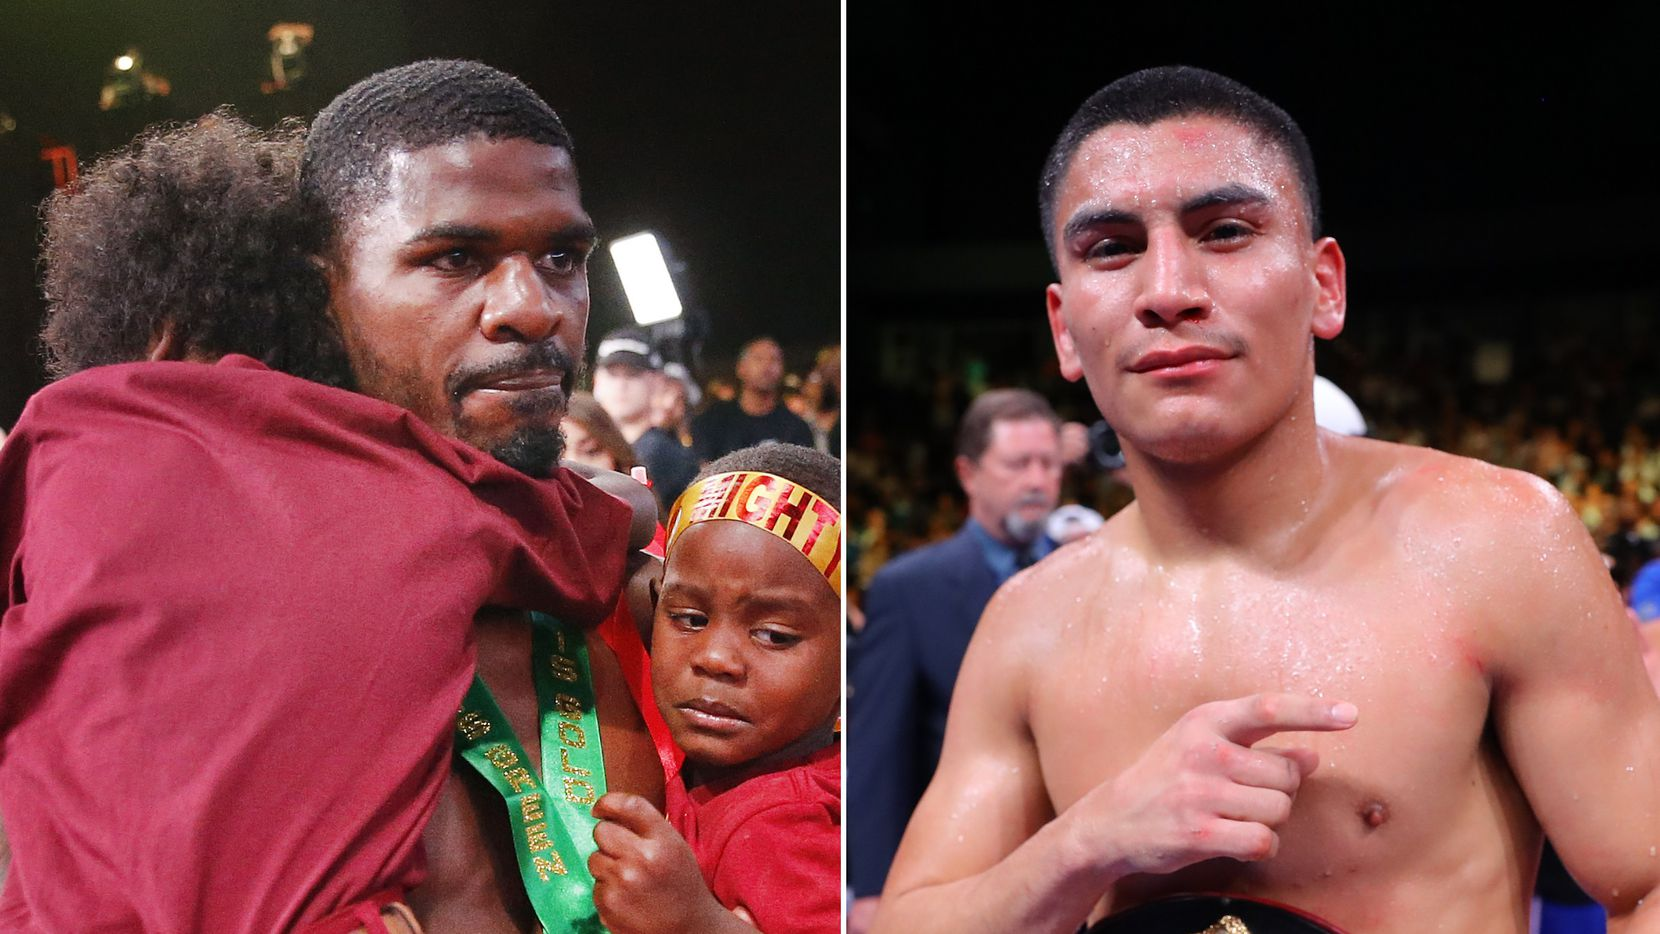 Dallas-area boxers Maurice Hooker (left) and Vergil Ortiz Jr. (right).